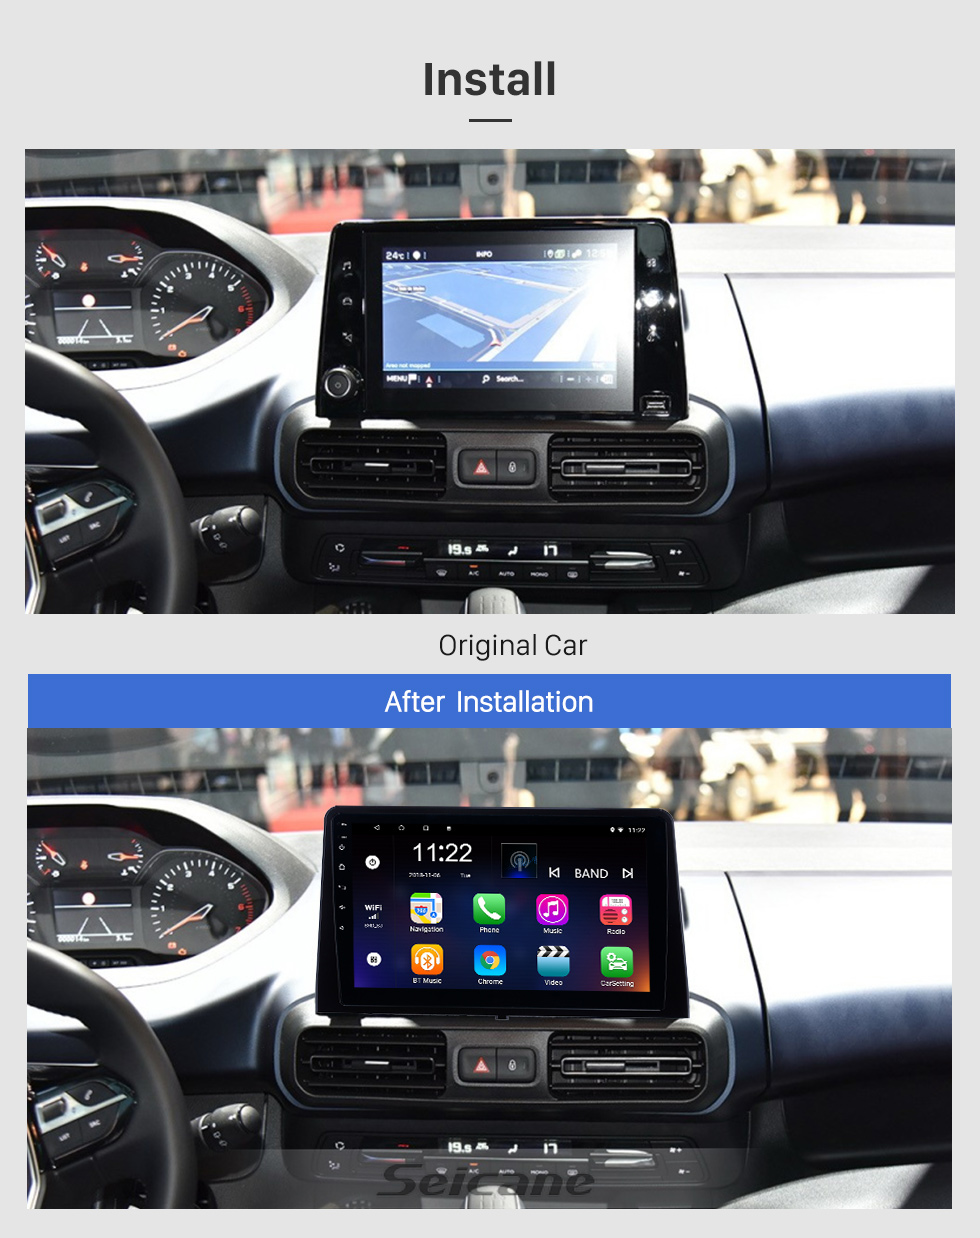 Seicane 10.1 inch Android 10.0 for 2019 Peugeot Rifter Radio GPS Navigation System With HD Touchscreen USB Bluetooth support DAB+ Carplay